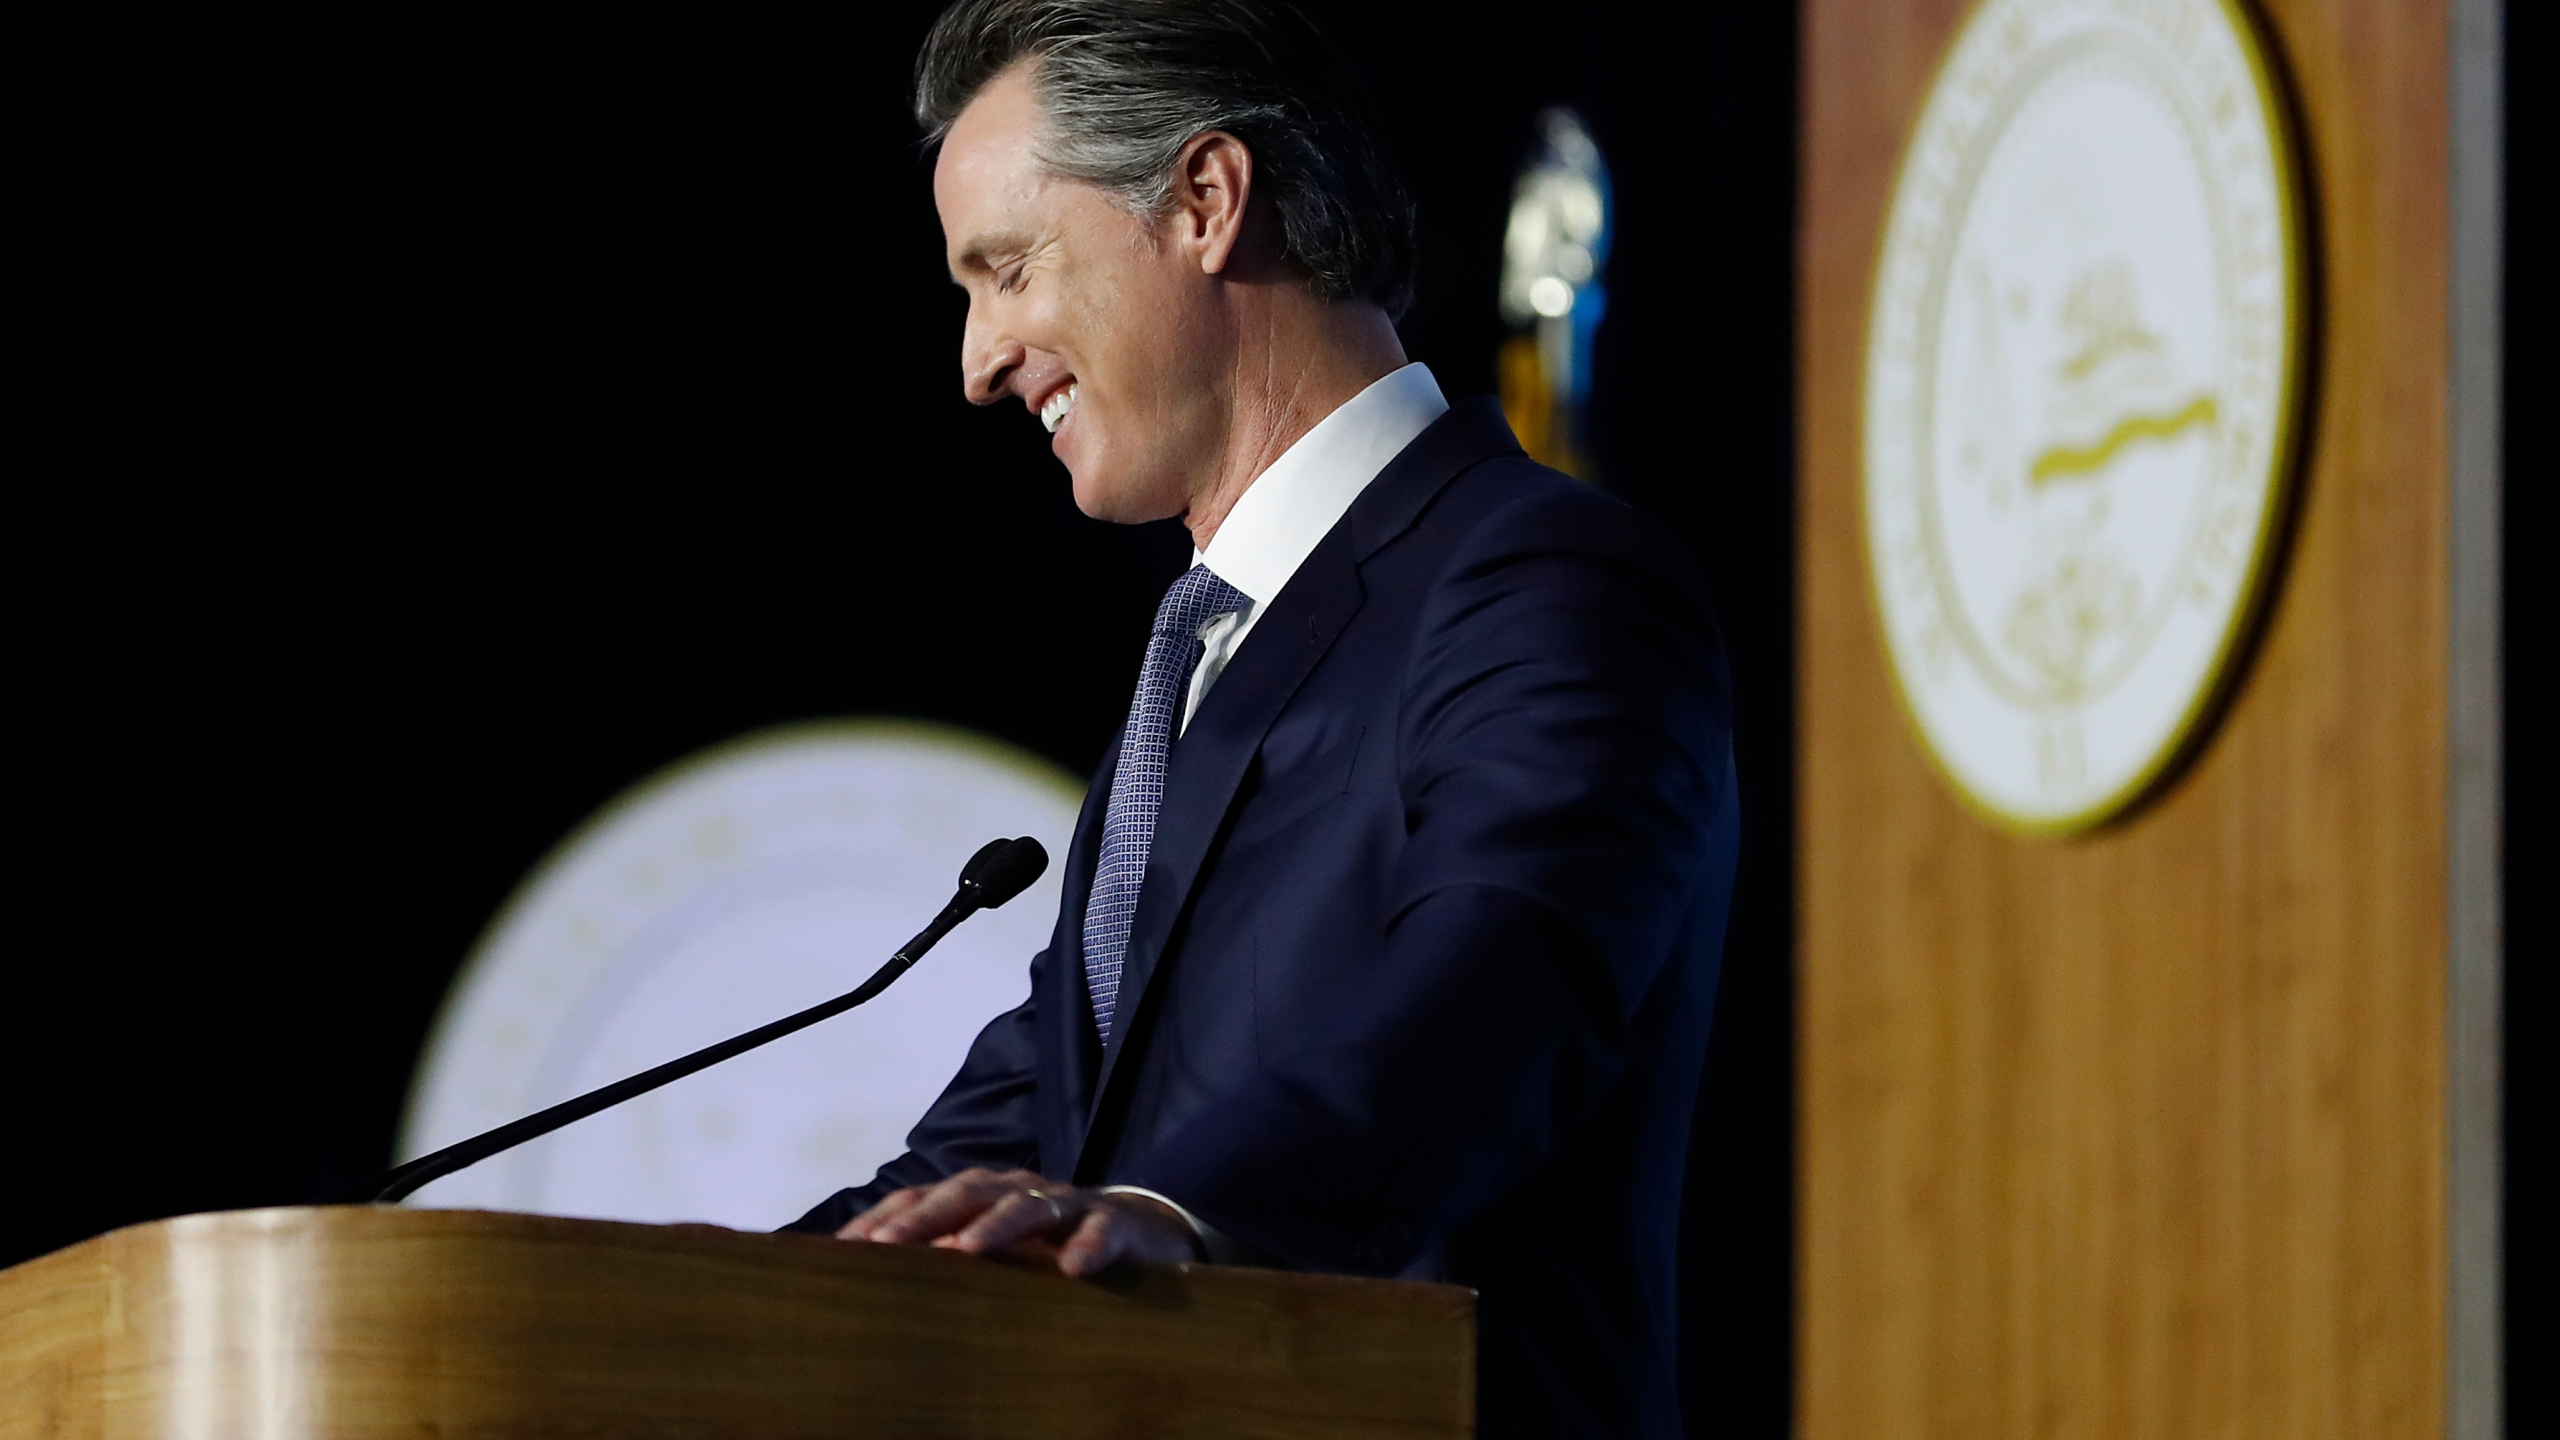 Gov. Gavin Newsom delivers his inaugural address after being sworn in as the 40th governor of California on Jan. 7, 2019, in Sacramento. (Credit: Stephen Lam / Getty Images)